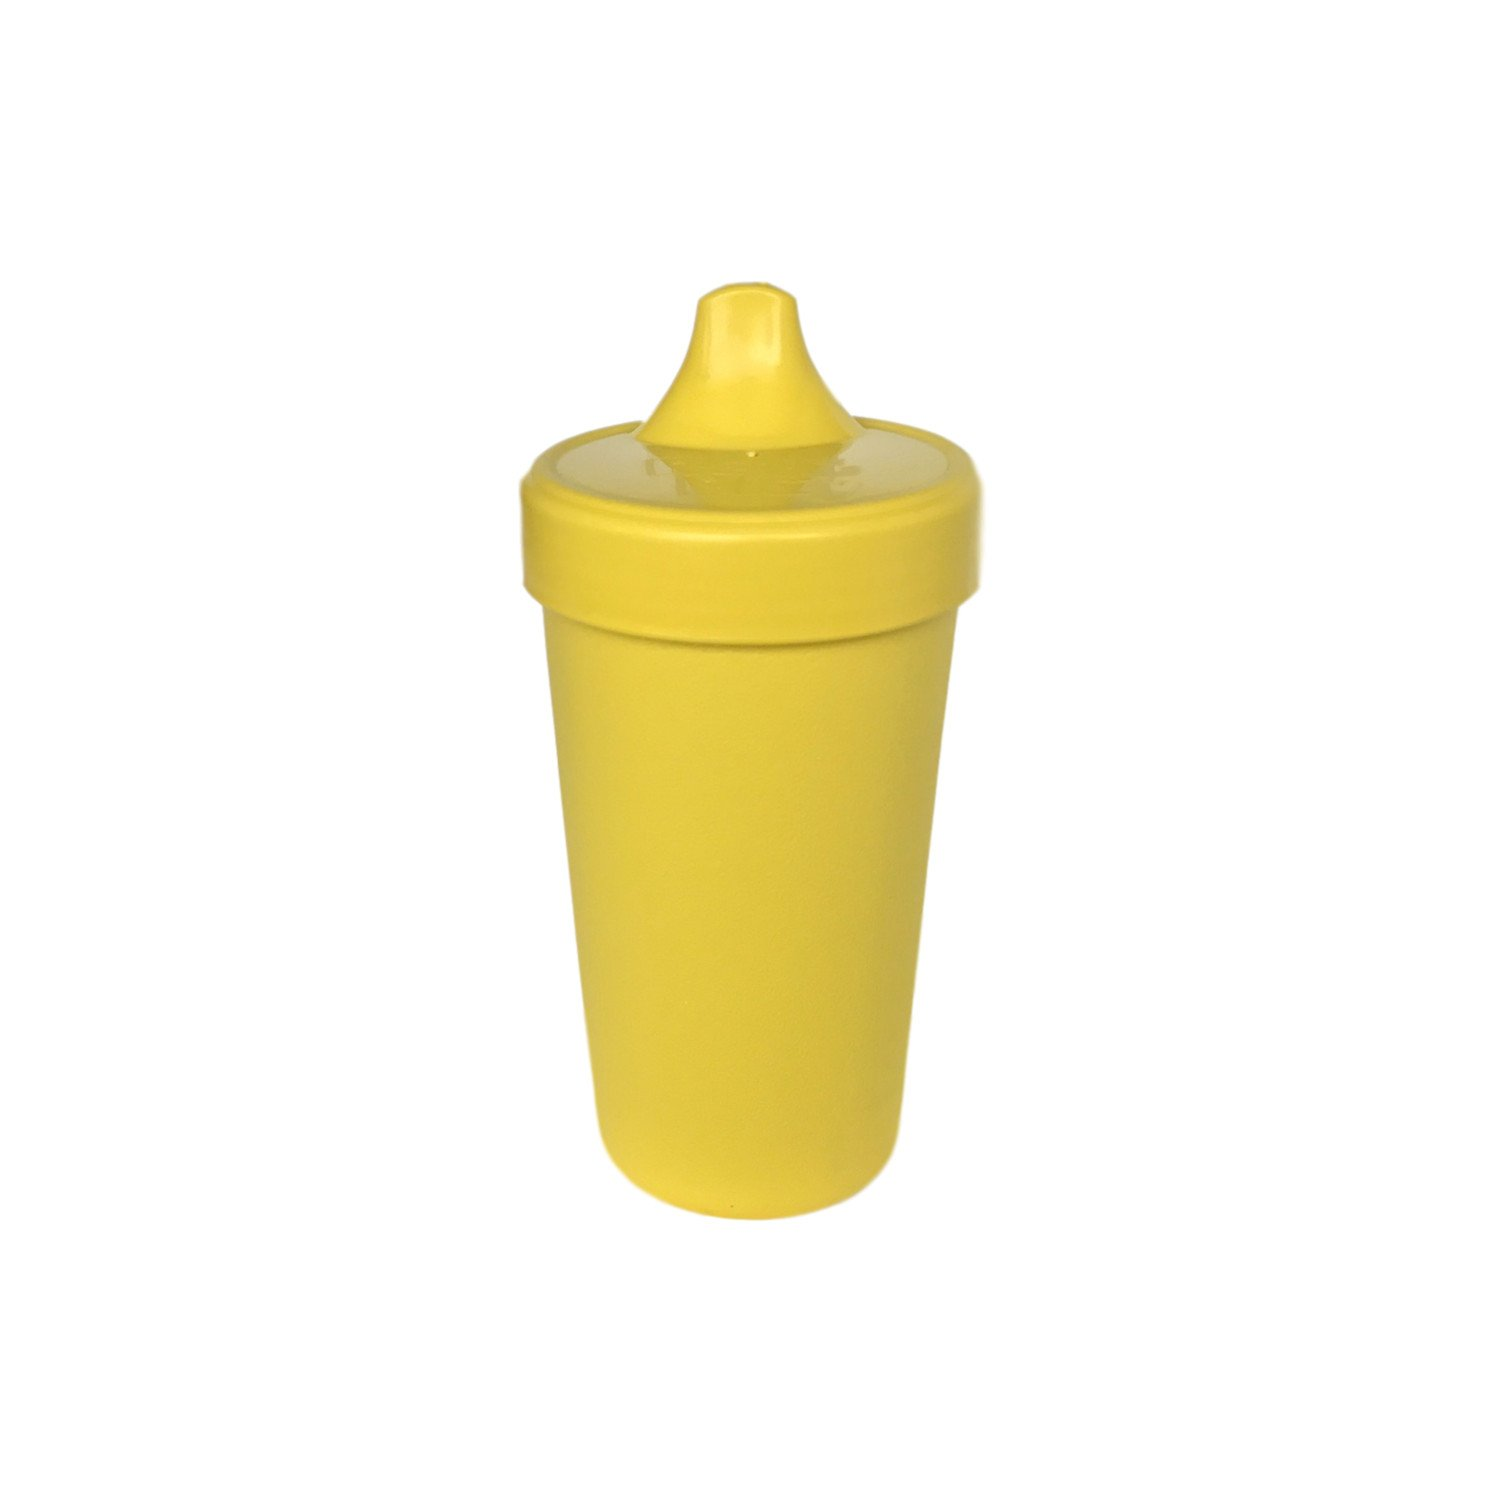 Replay Sippy Cup Replay Sippy Cups Yellow at Little Earth Nest Eco Shop